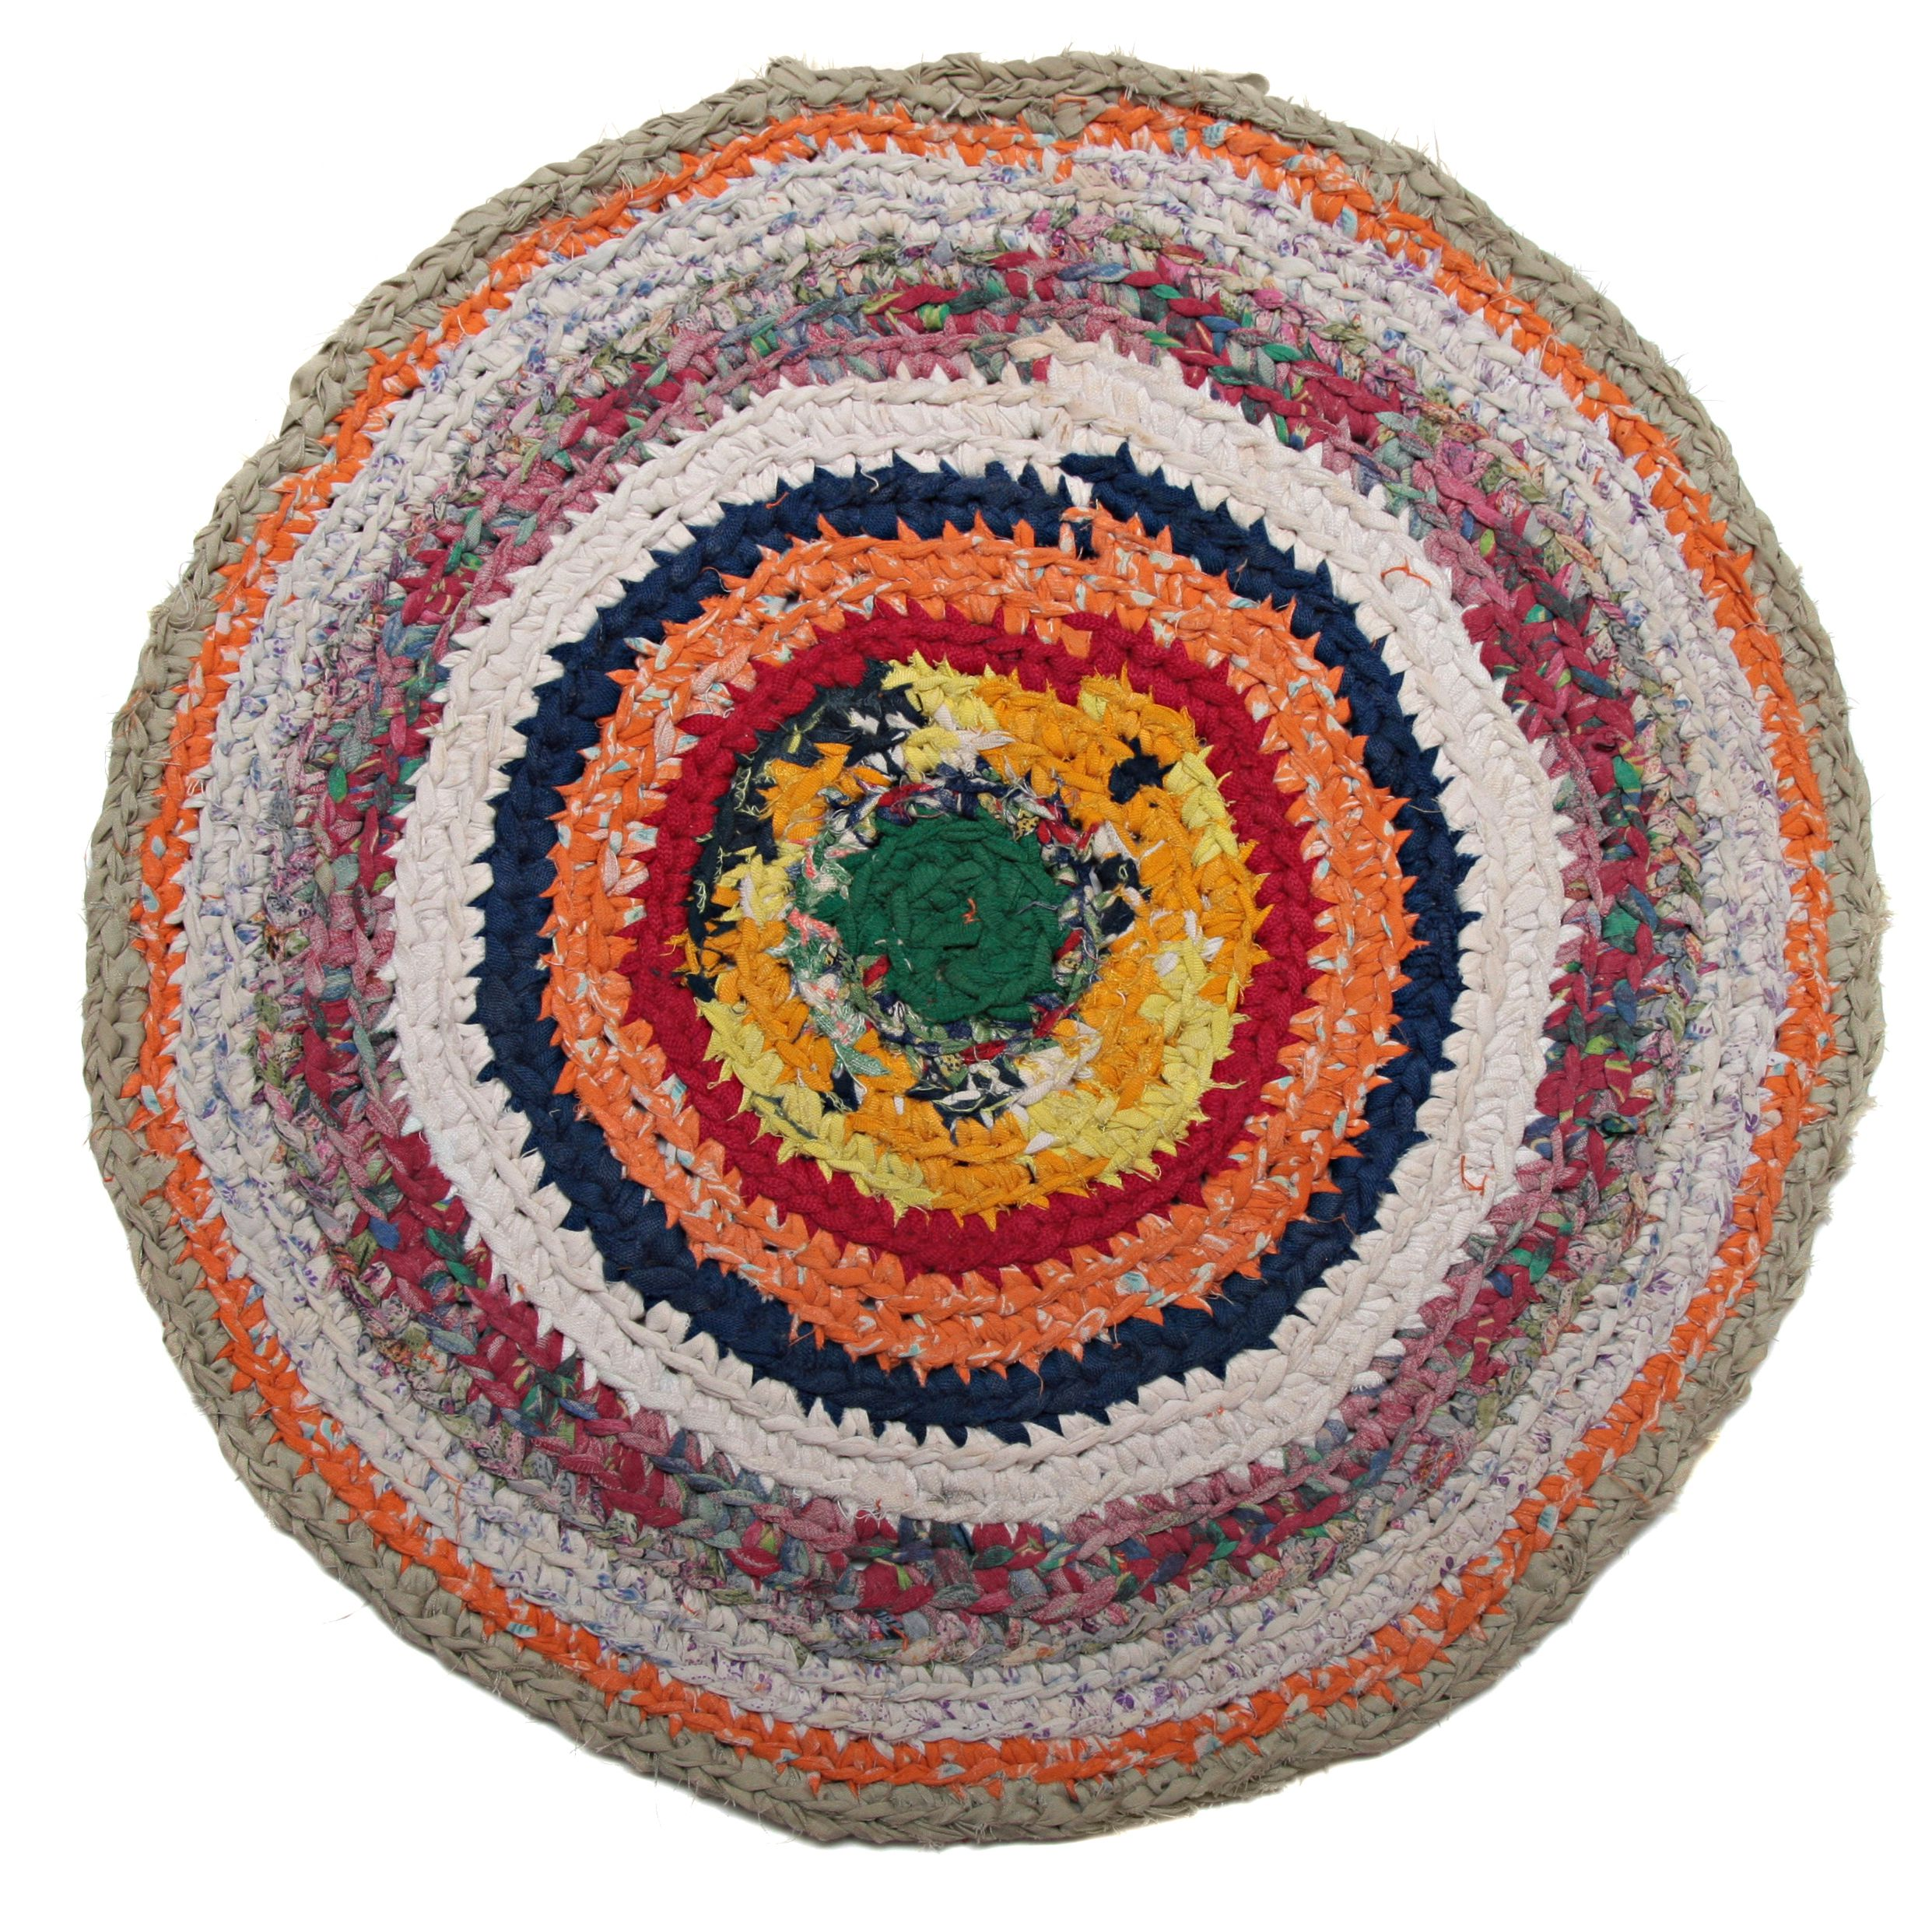 Free Colorful Crochet Rag Rug Pattern